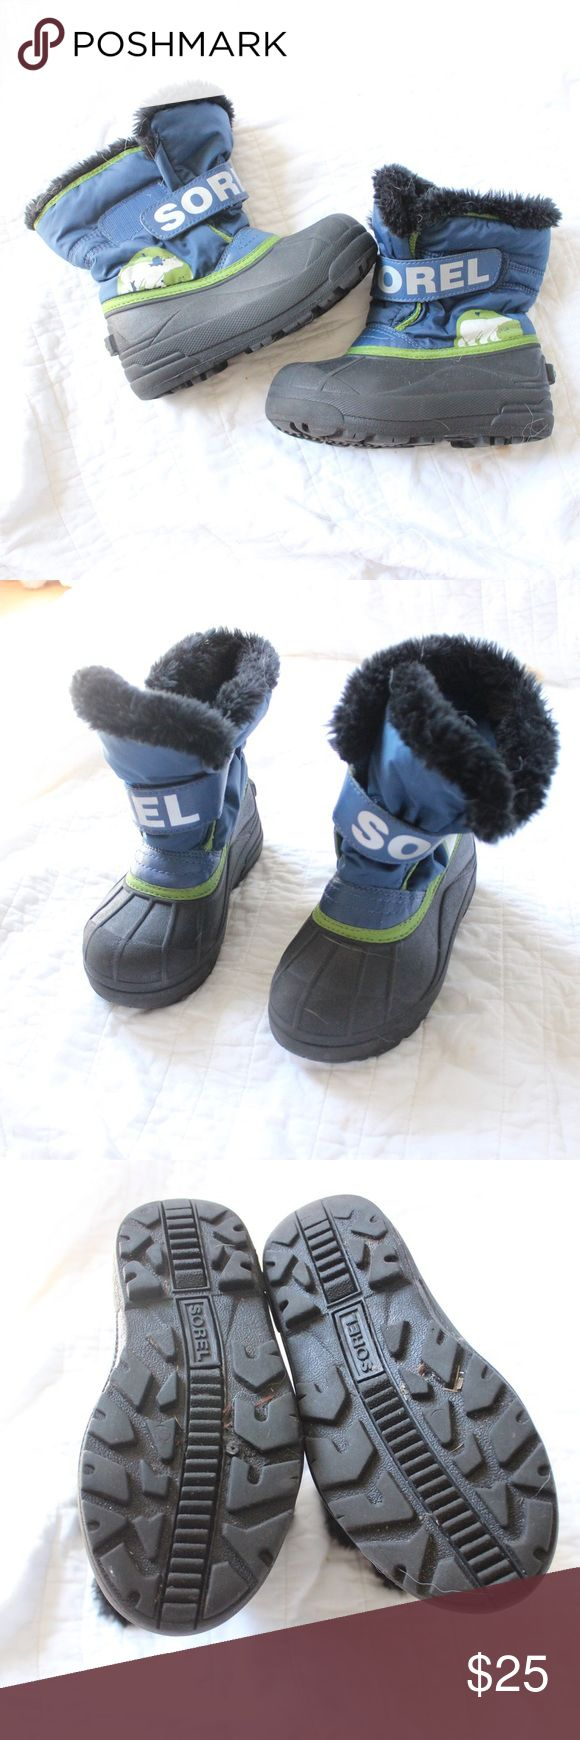 Boys Sorel Snow Faux Fur Lined Boots Boy's Sorel boots with faux fur lining. In good condition…the outside is a little faded.  Measurements available upon request.  All orders shipped same or next business day! Sorel Shoes Rain & Snow Boots